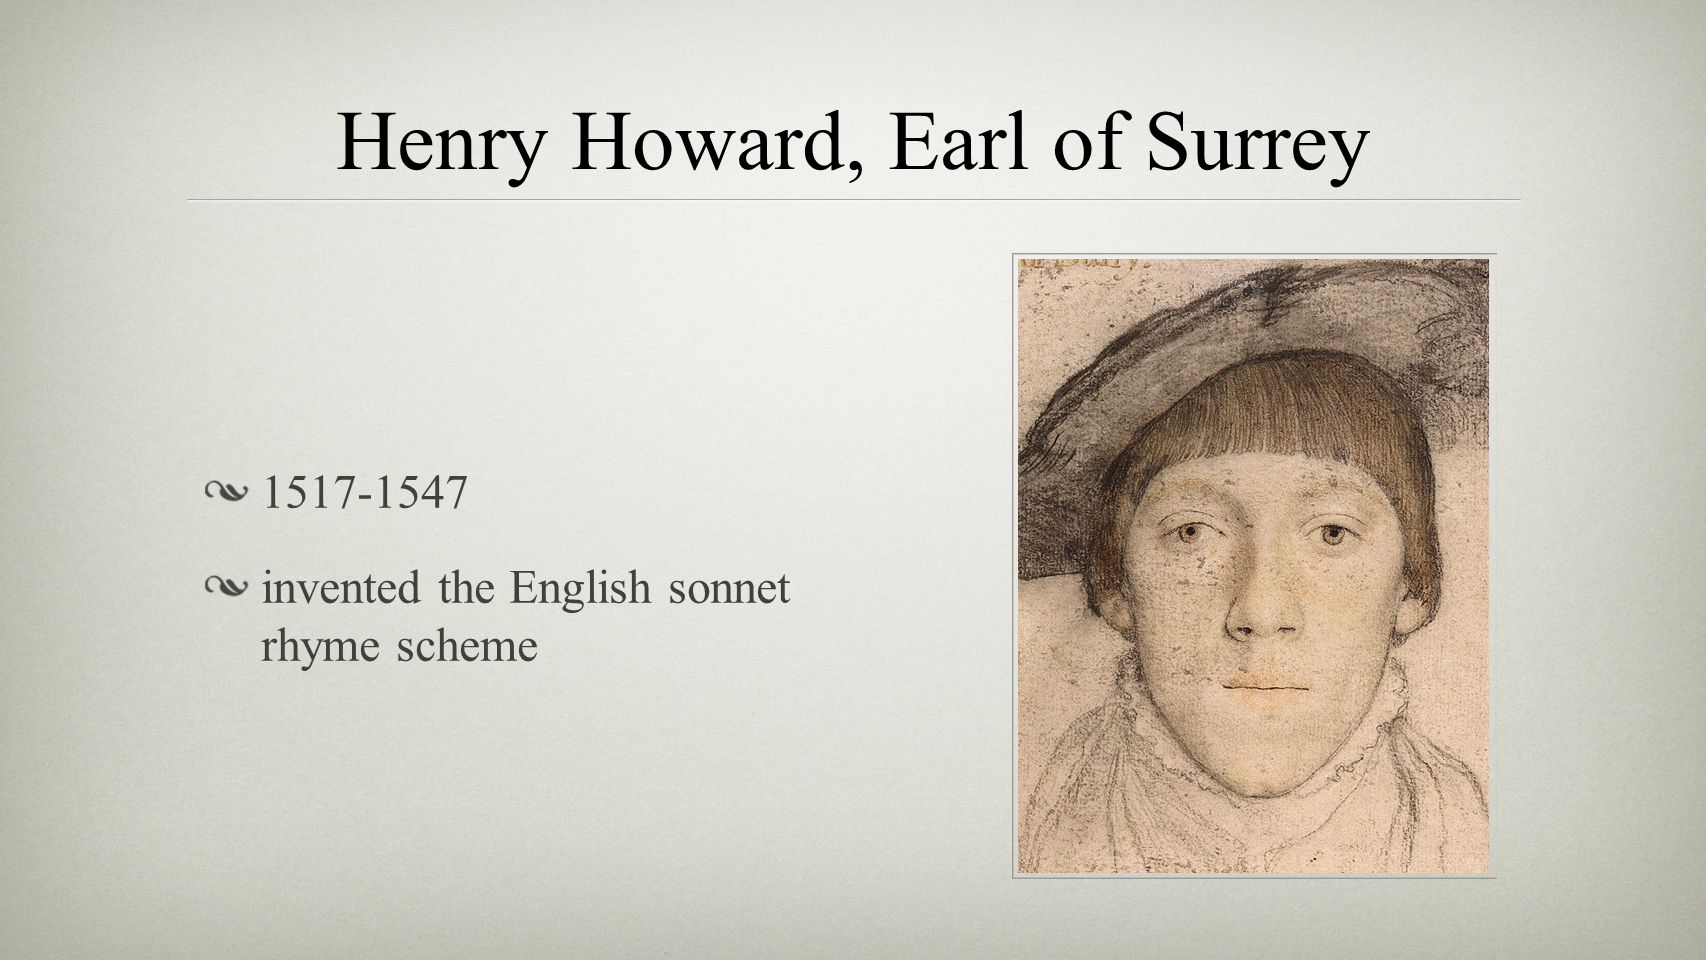 Henry Howard, Earl of Surrey 1517-1547 invented the English sonnet rhyme scheme